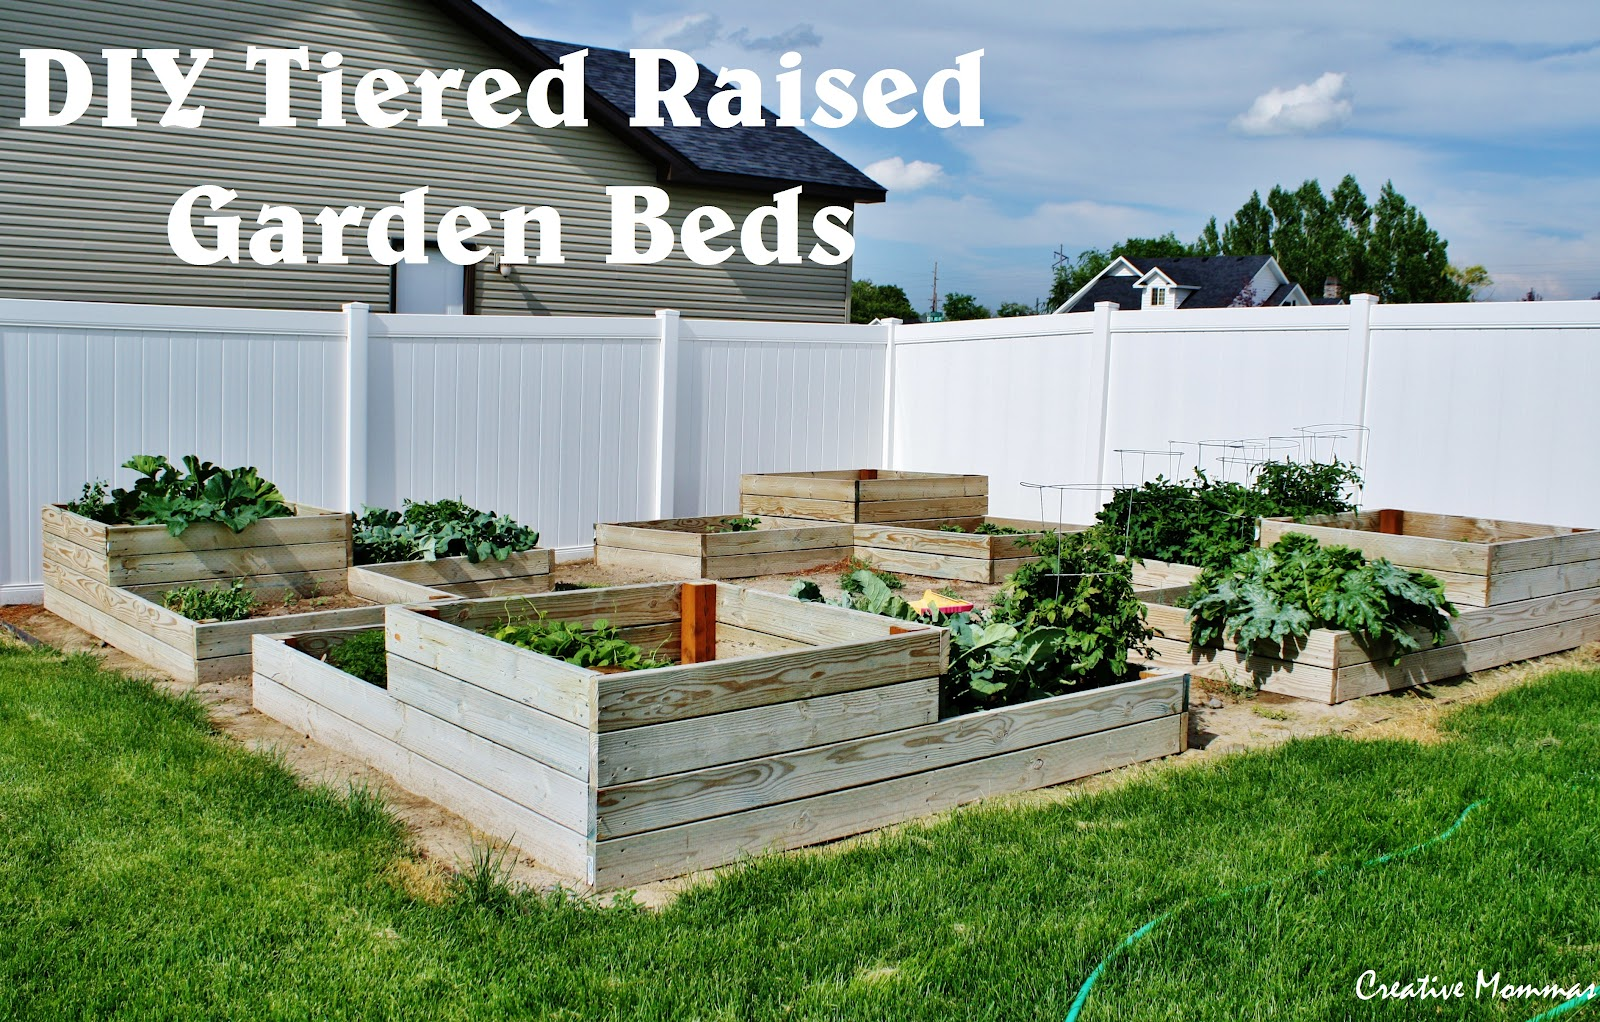 Creative mommas diy tiered raised garden beds for Home garden box design